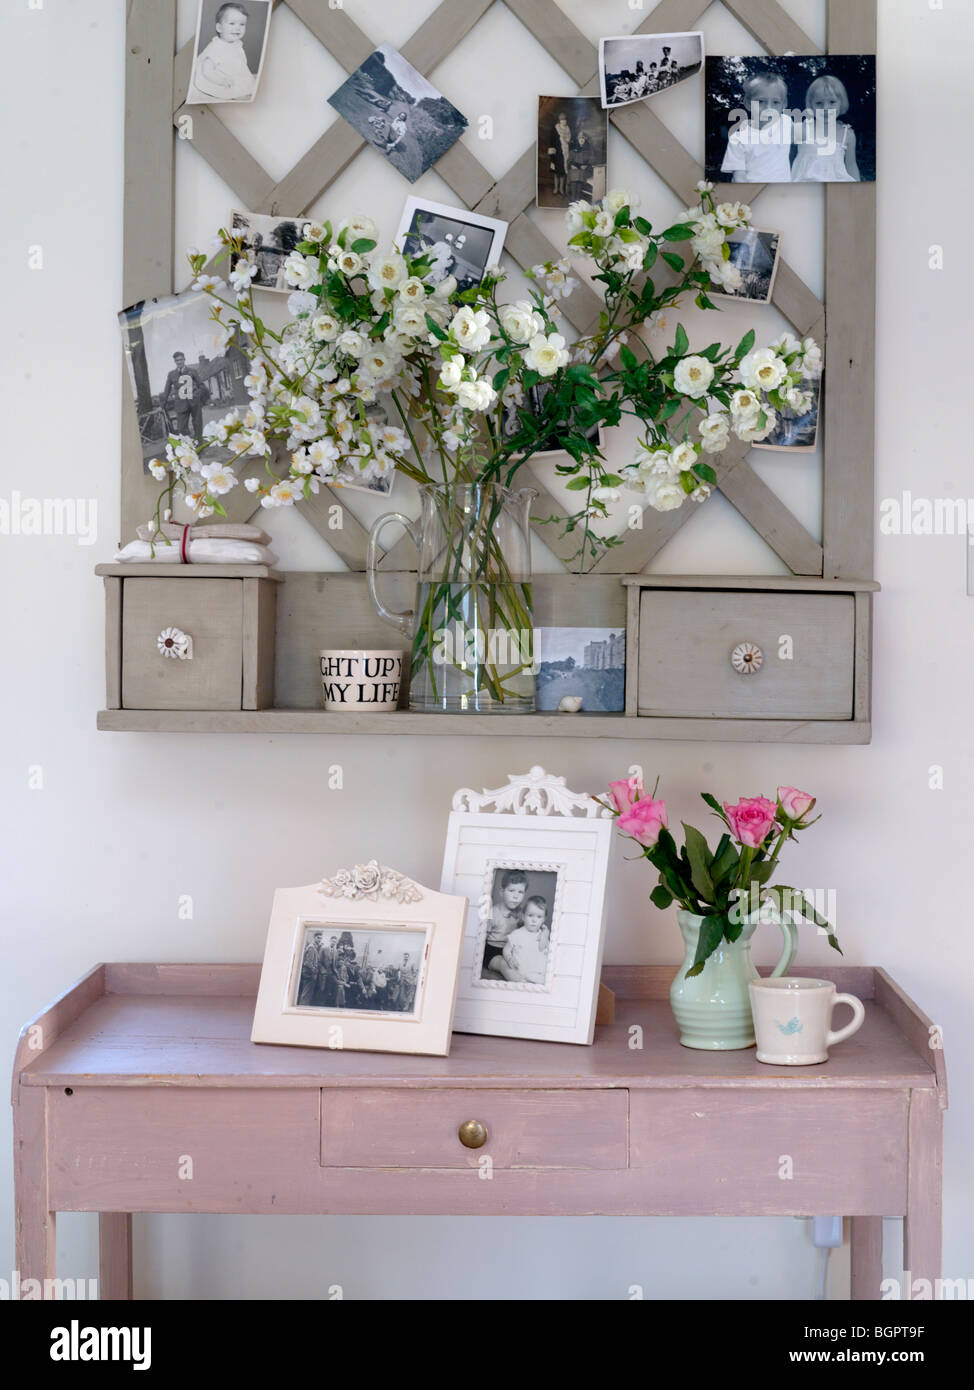 stock photo country kitchen side table with photo frames and flowers kitchen side table Stock Photo country kitchen side table with photo frames and flowers